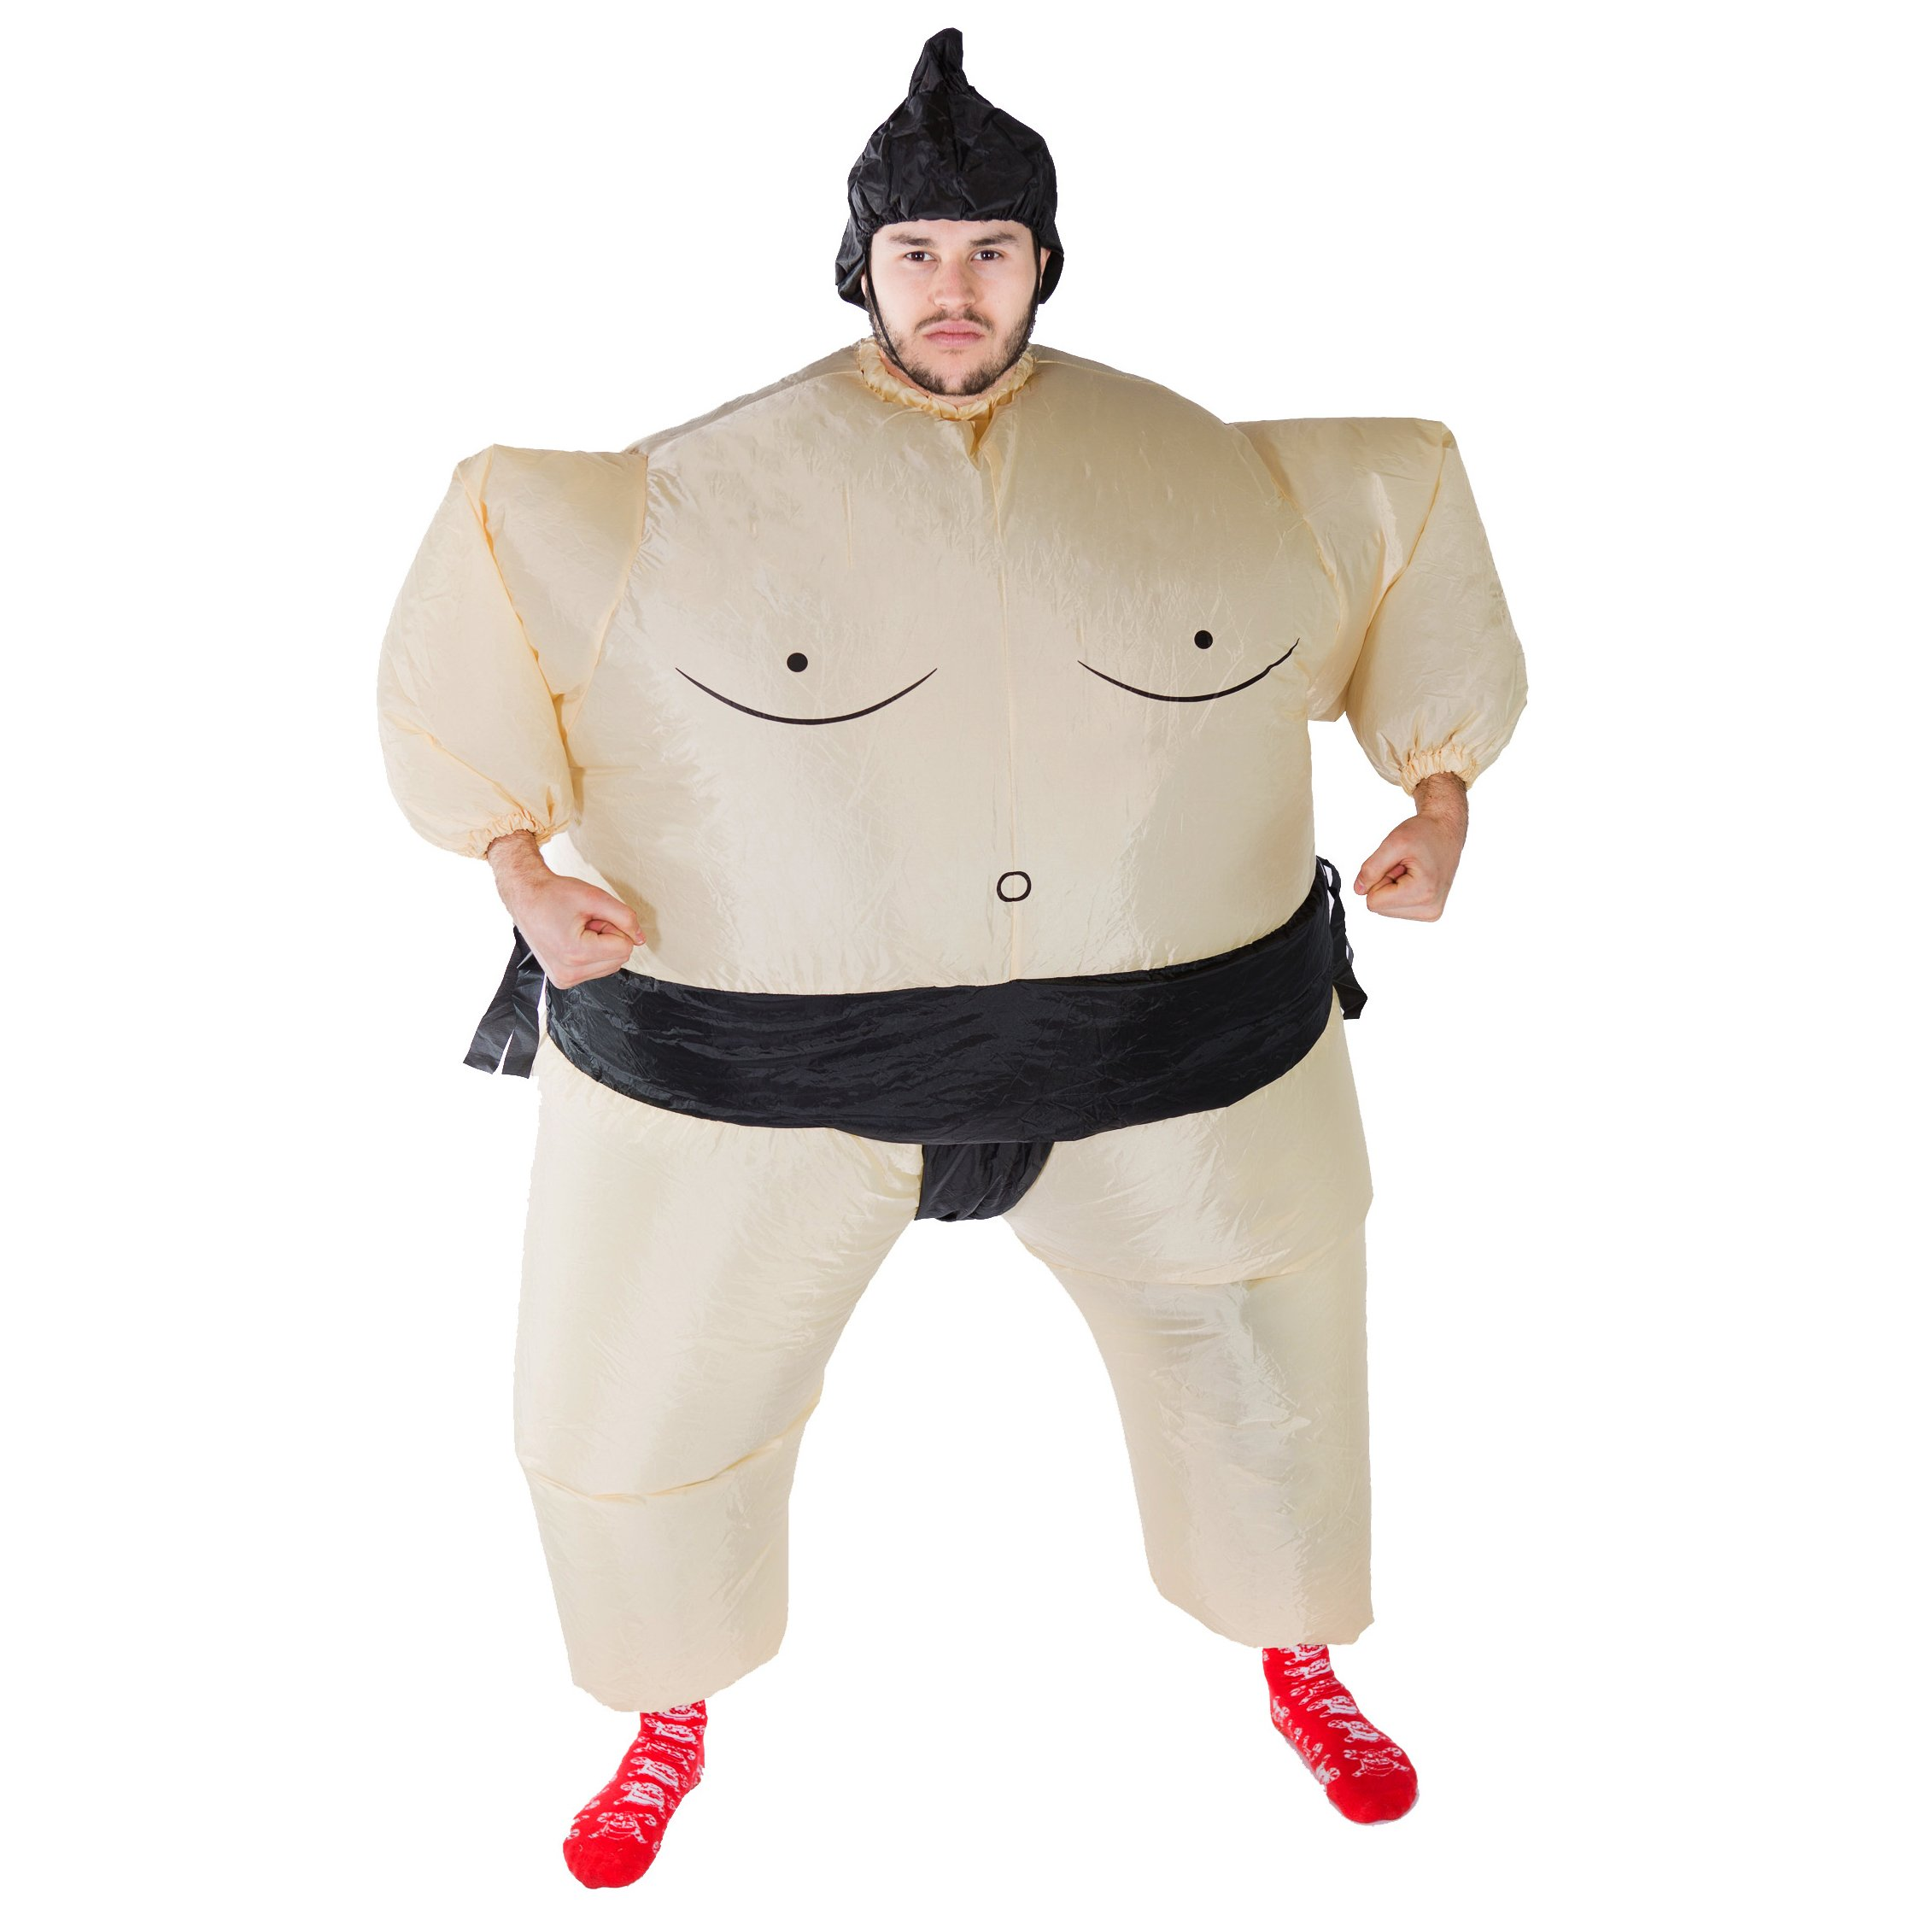 Bodysocks Adult Inflatable Sumo Wrestler Fancy Dress Costume by Bodysocks